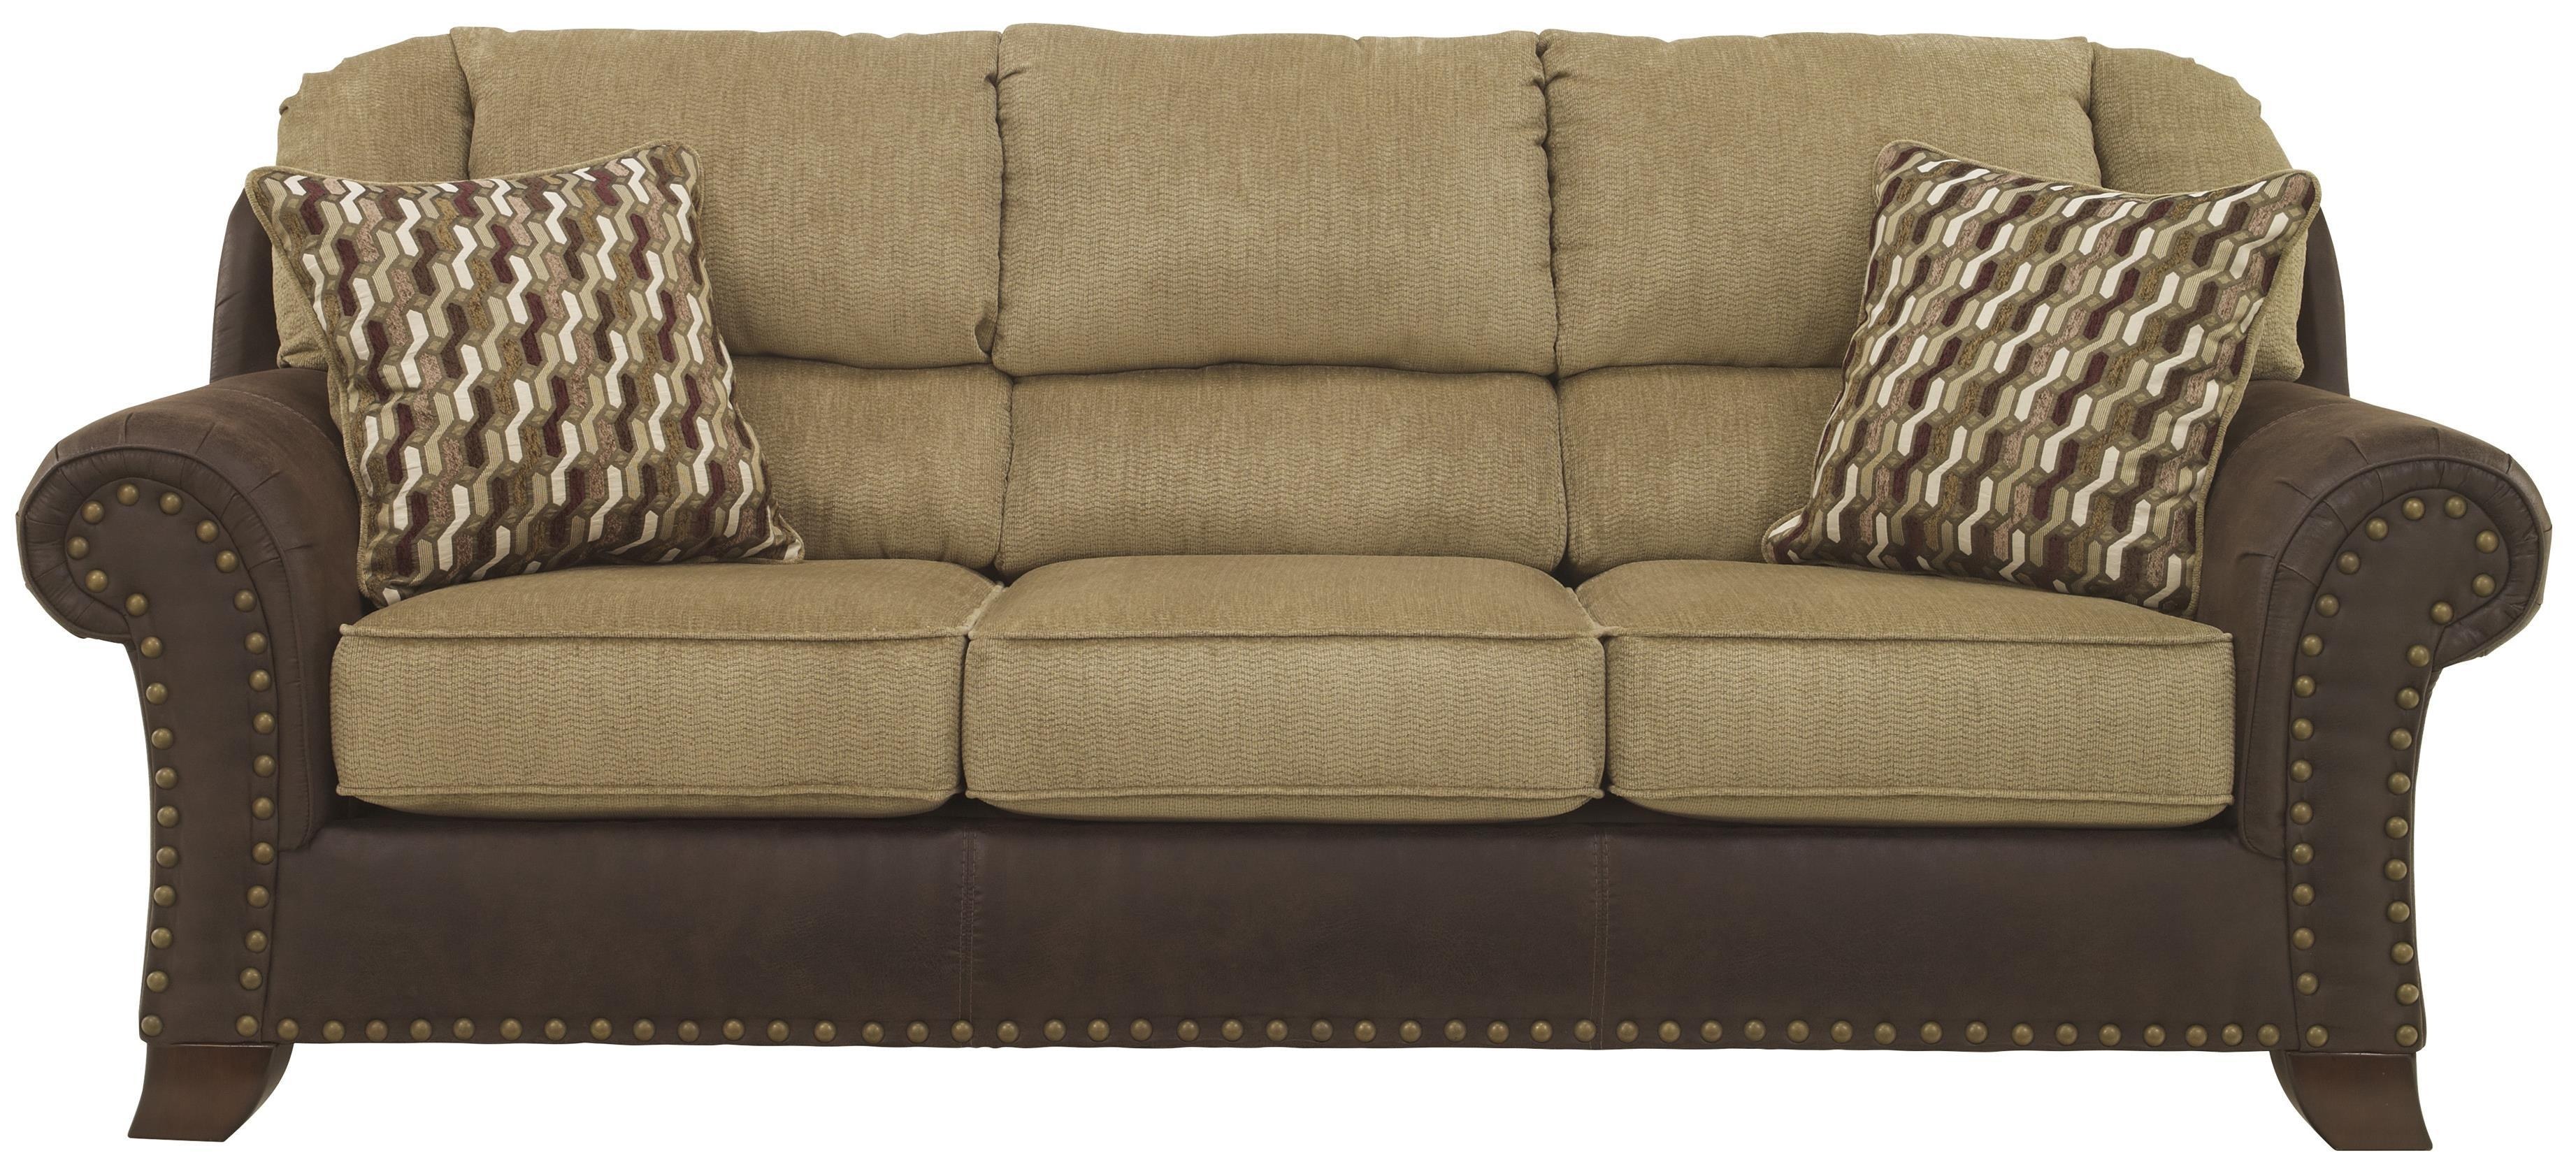 upholstery of sofa sectional bed microfiber 22 ideas fabric sofas